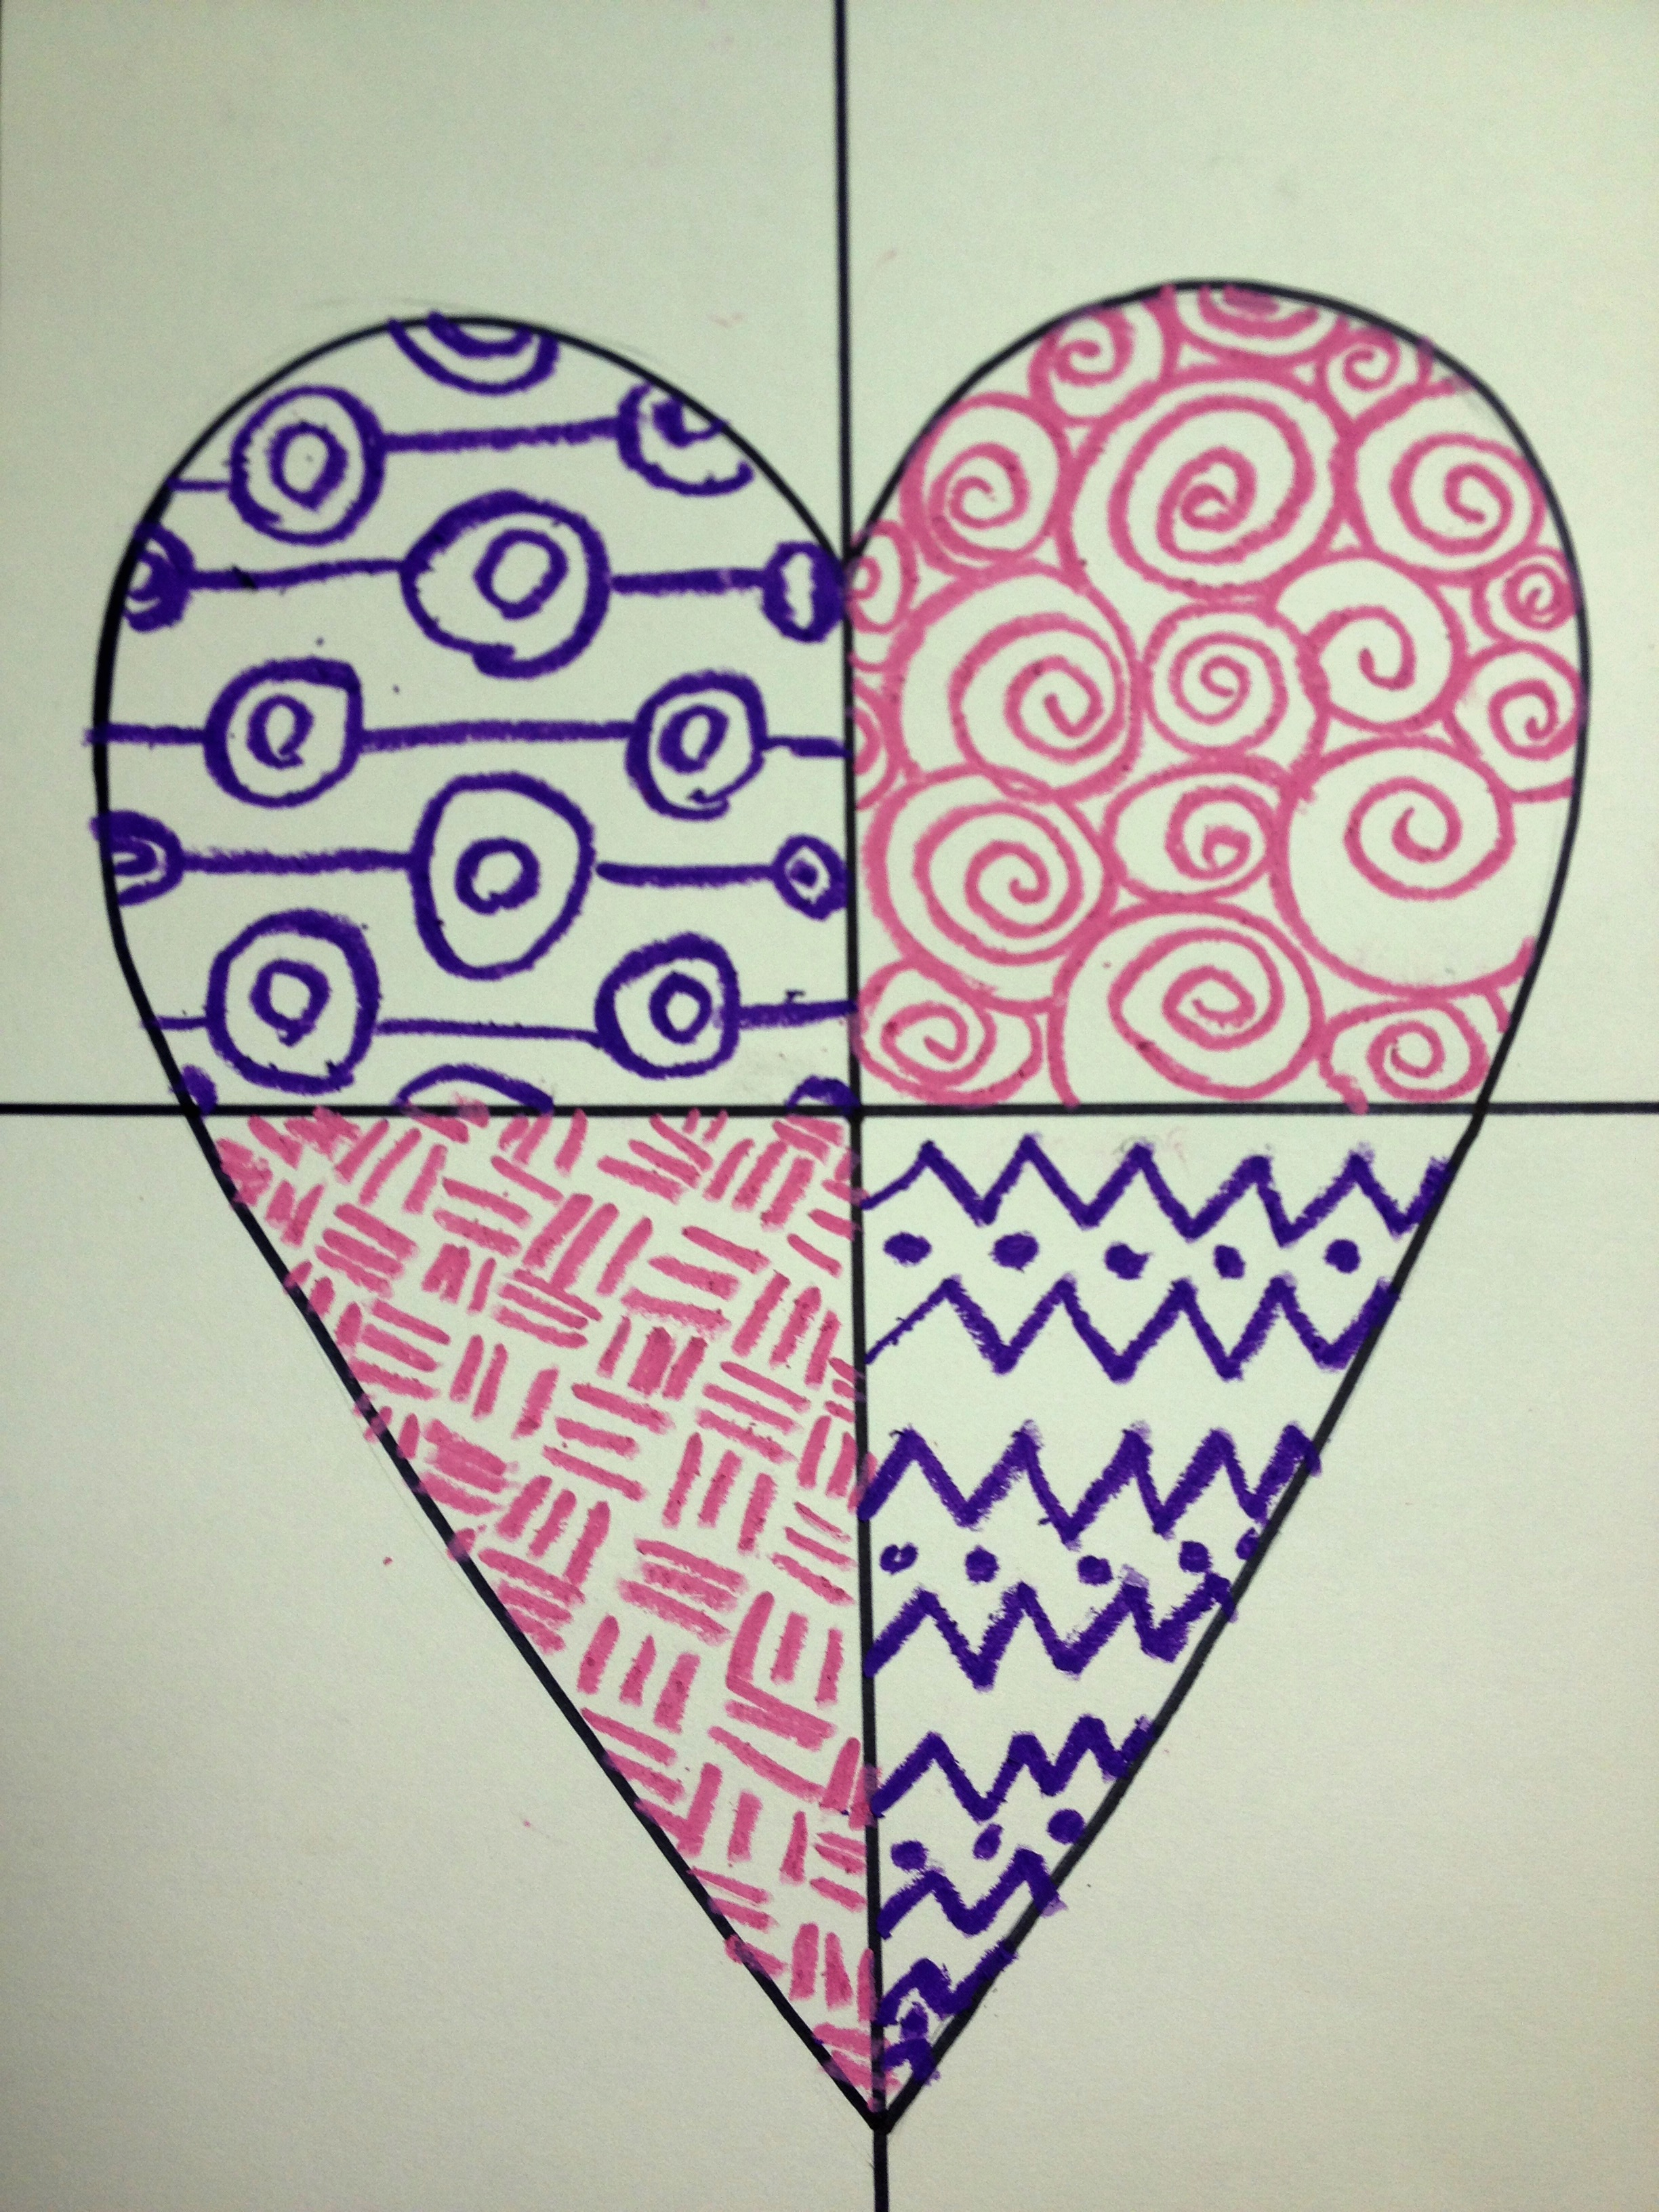 Heart Art - Mixed Media Lesson - Create Art with ME